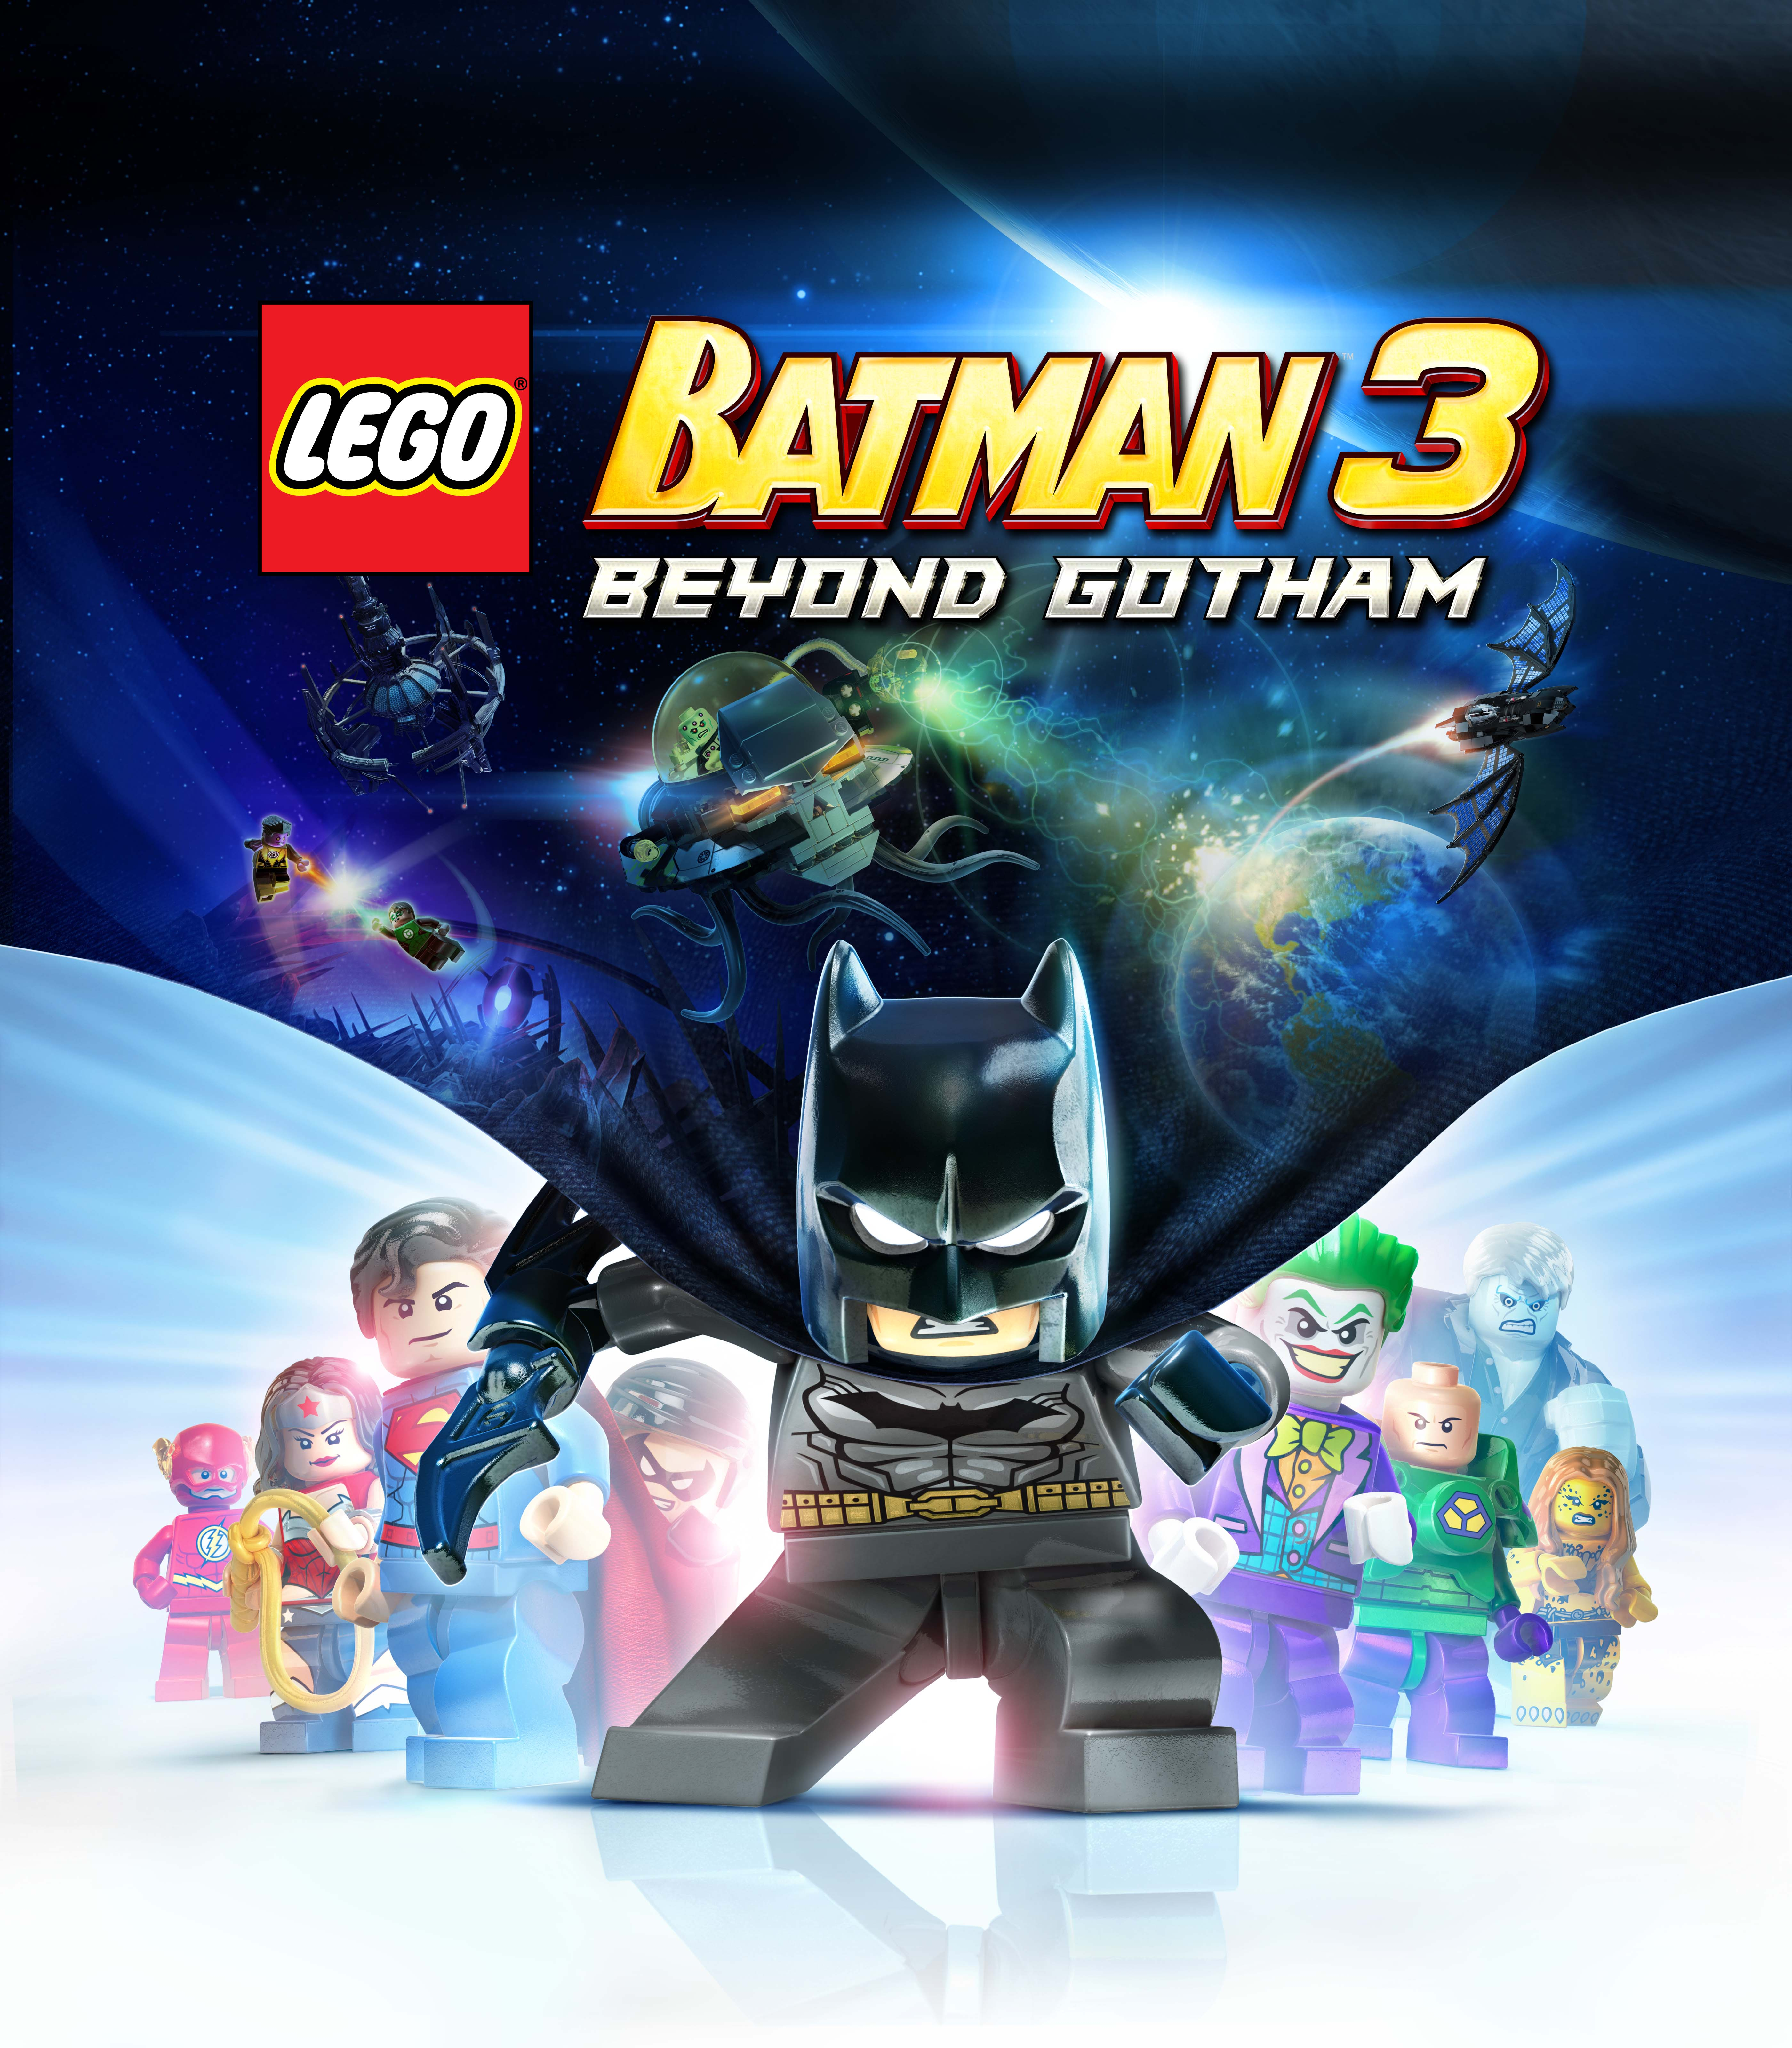 Lego Batman 3: Beyond Gotham is set to soar into space on November 14th